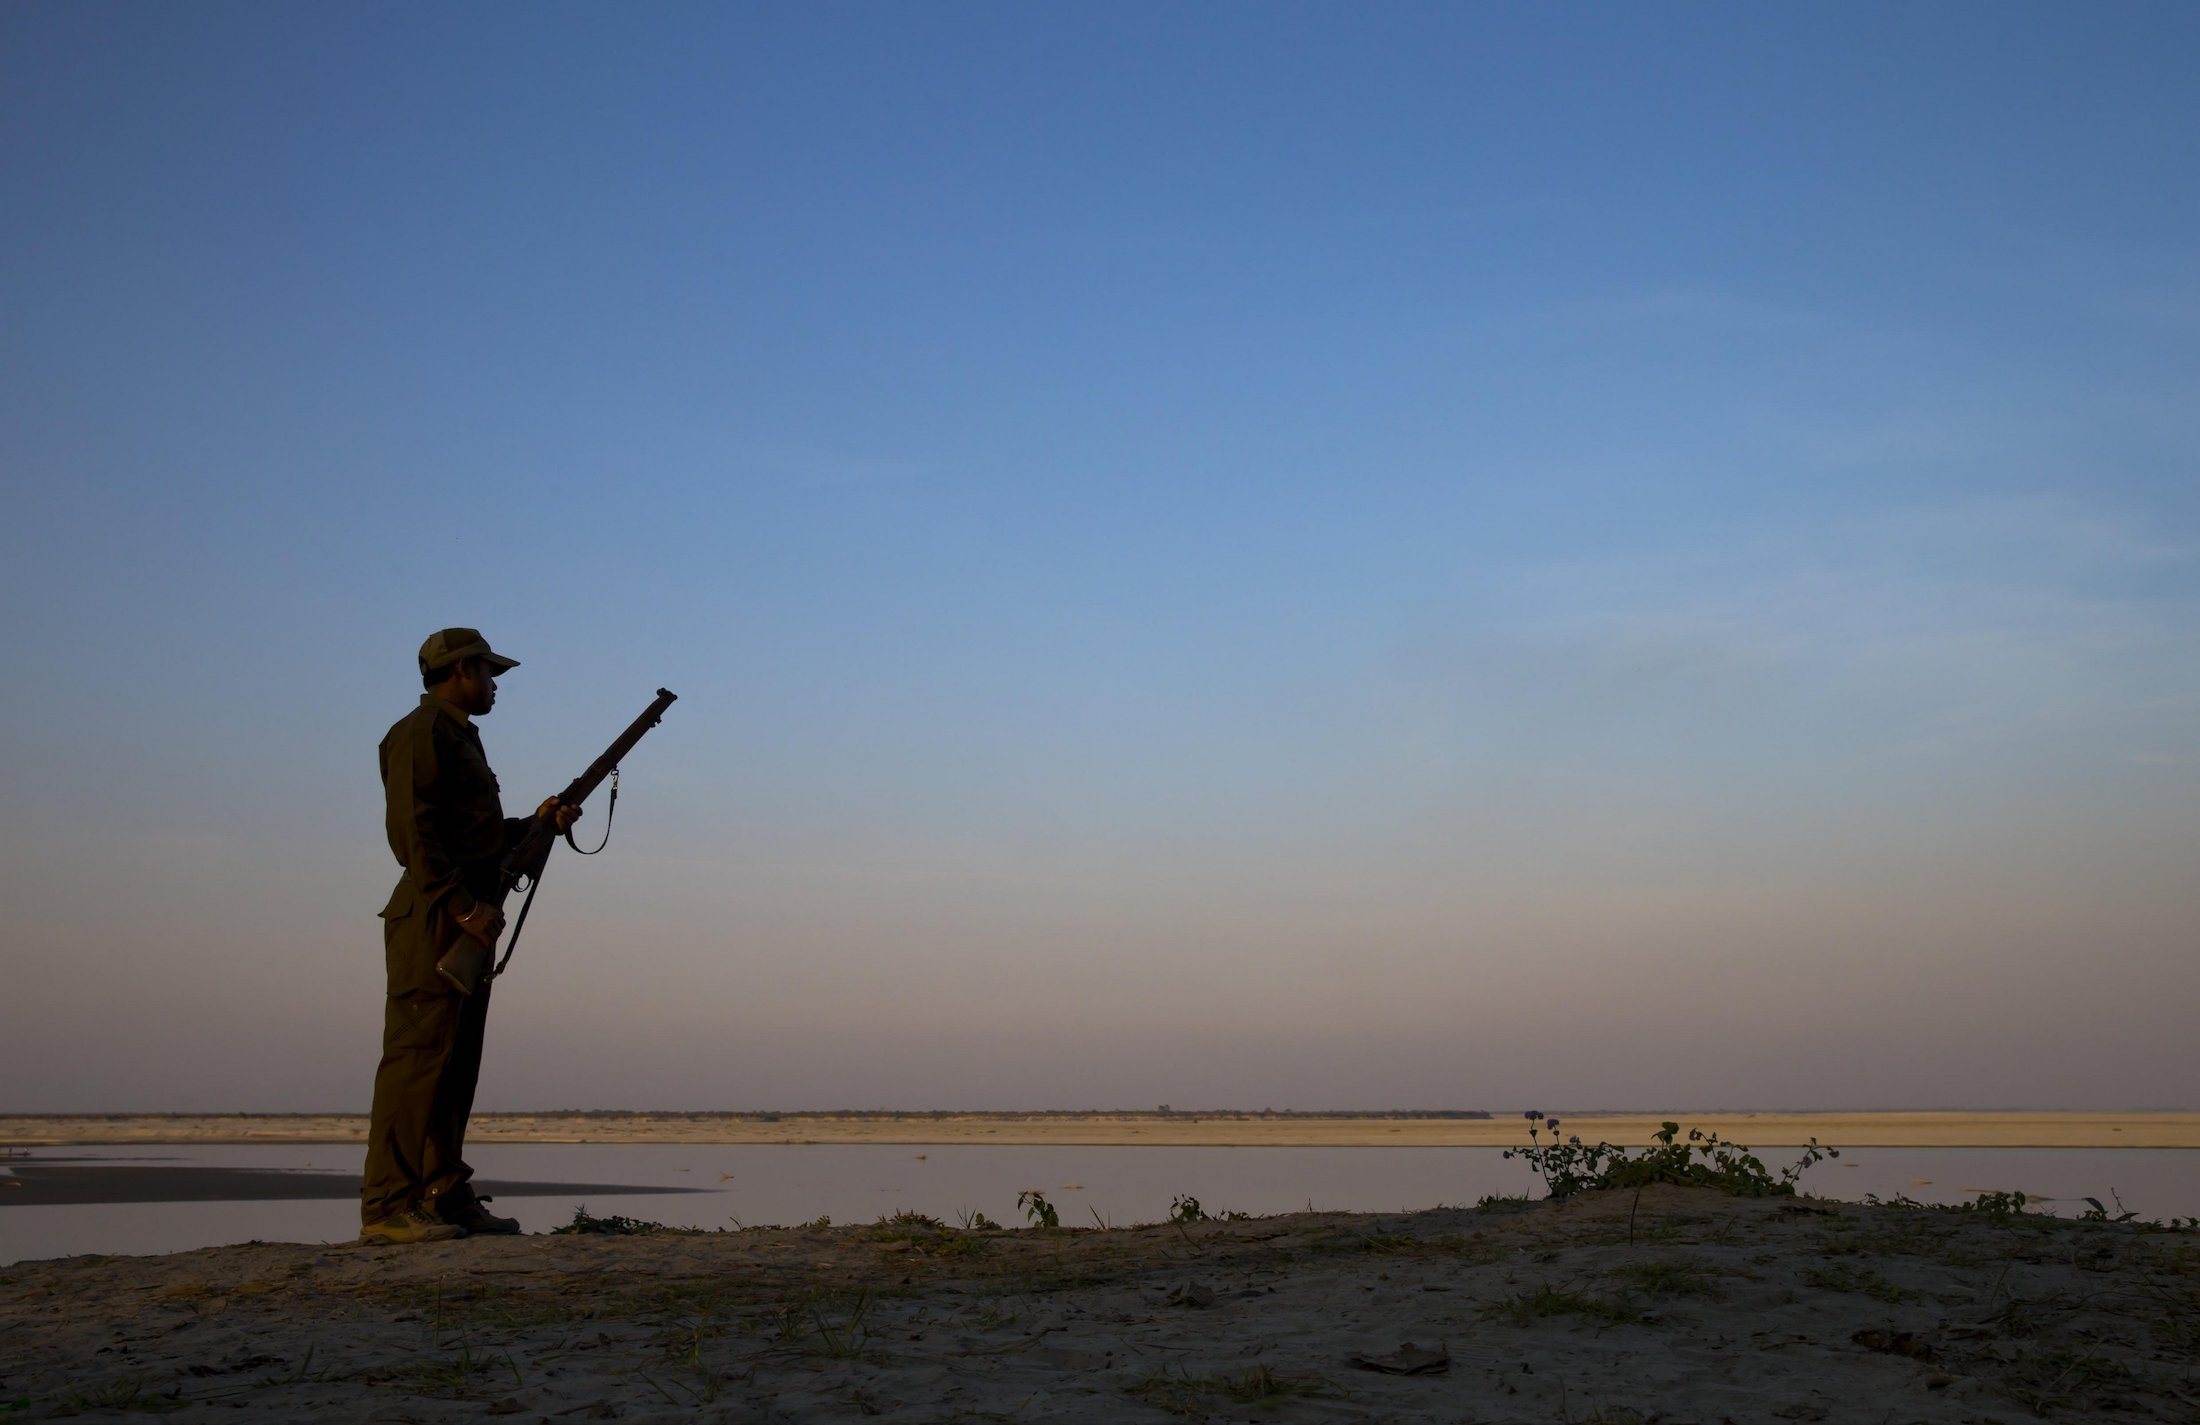 Forest guard armed with rifle, looking out over Brahmaputra River, Kaziranga N.P., Assam, India, January